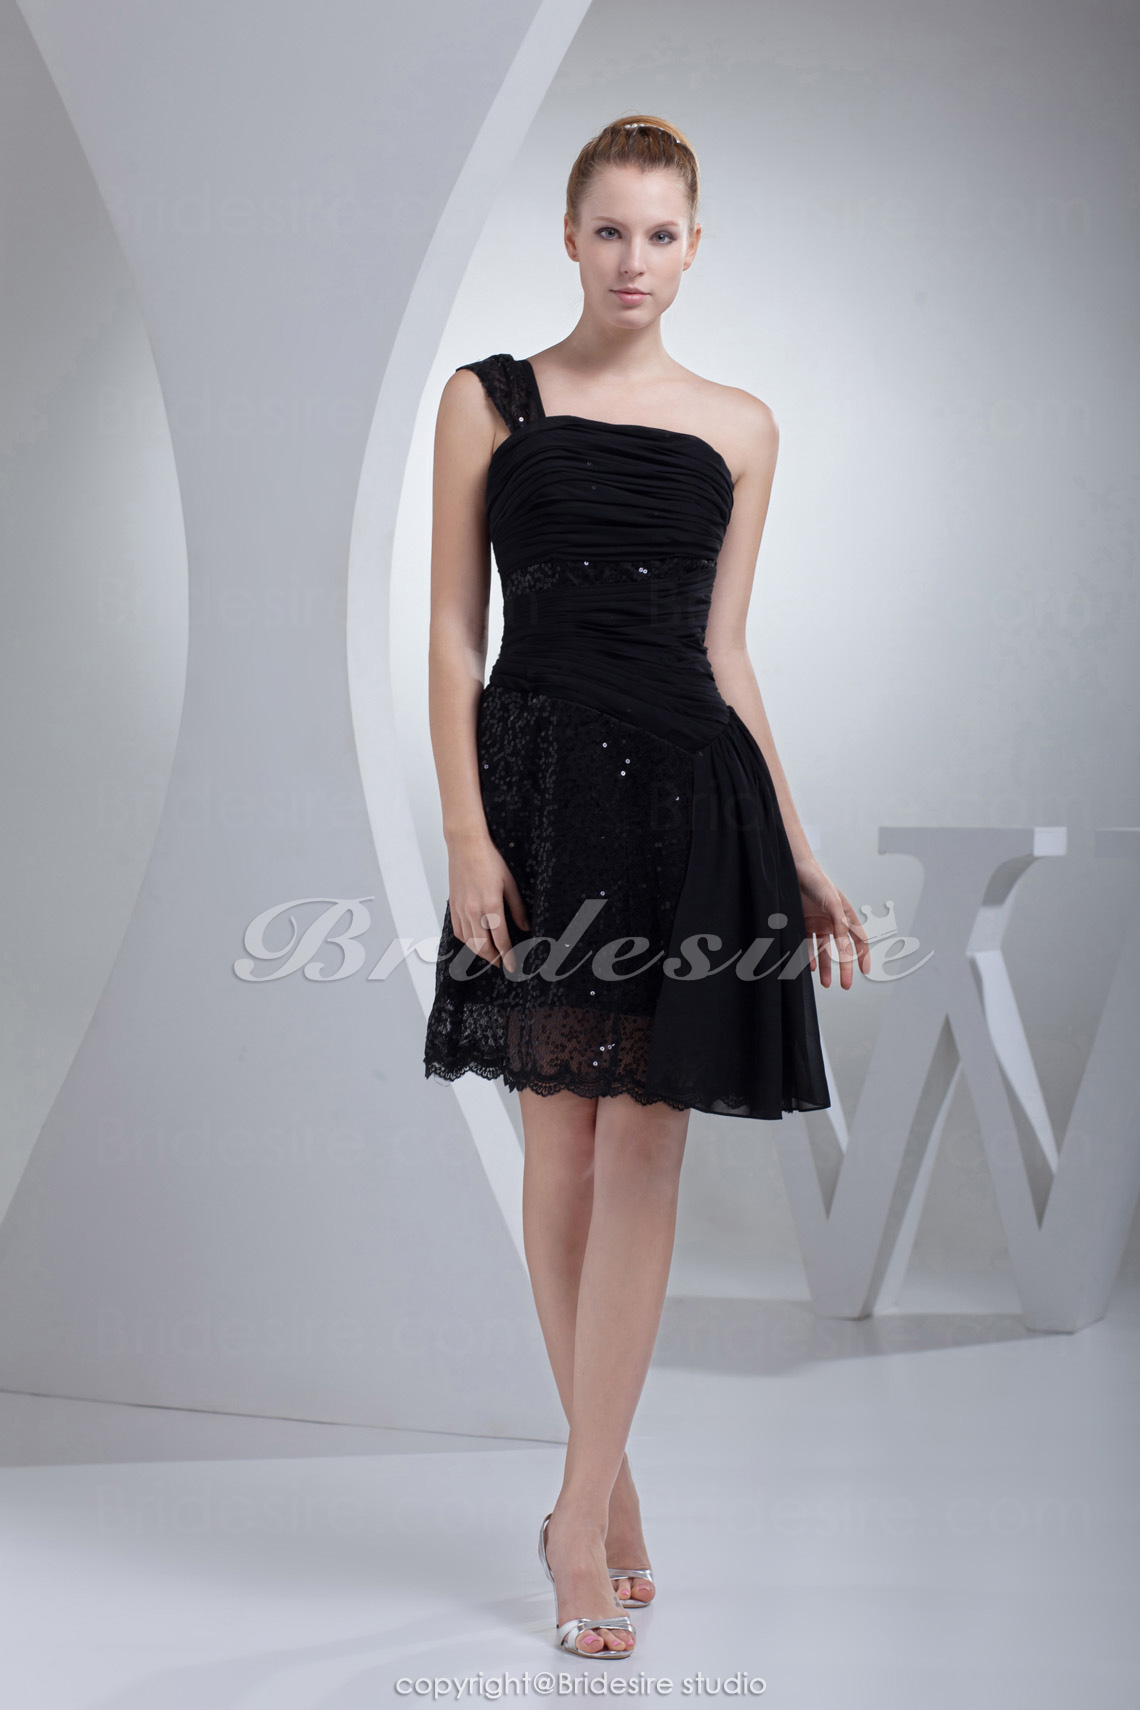 Sheath/Column One Shoulder Short/Mini Sleeveless Chiffon Sequined Dress